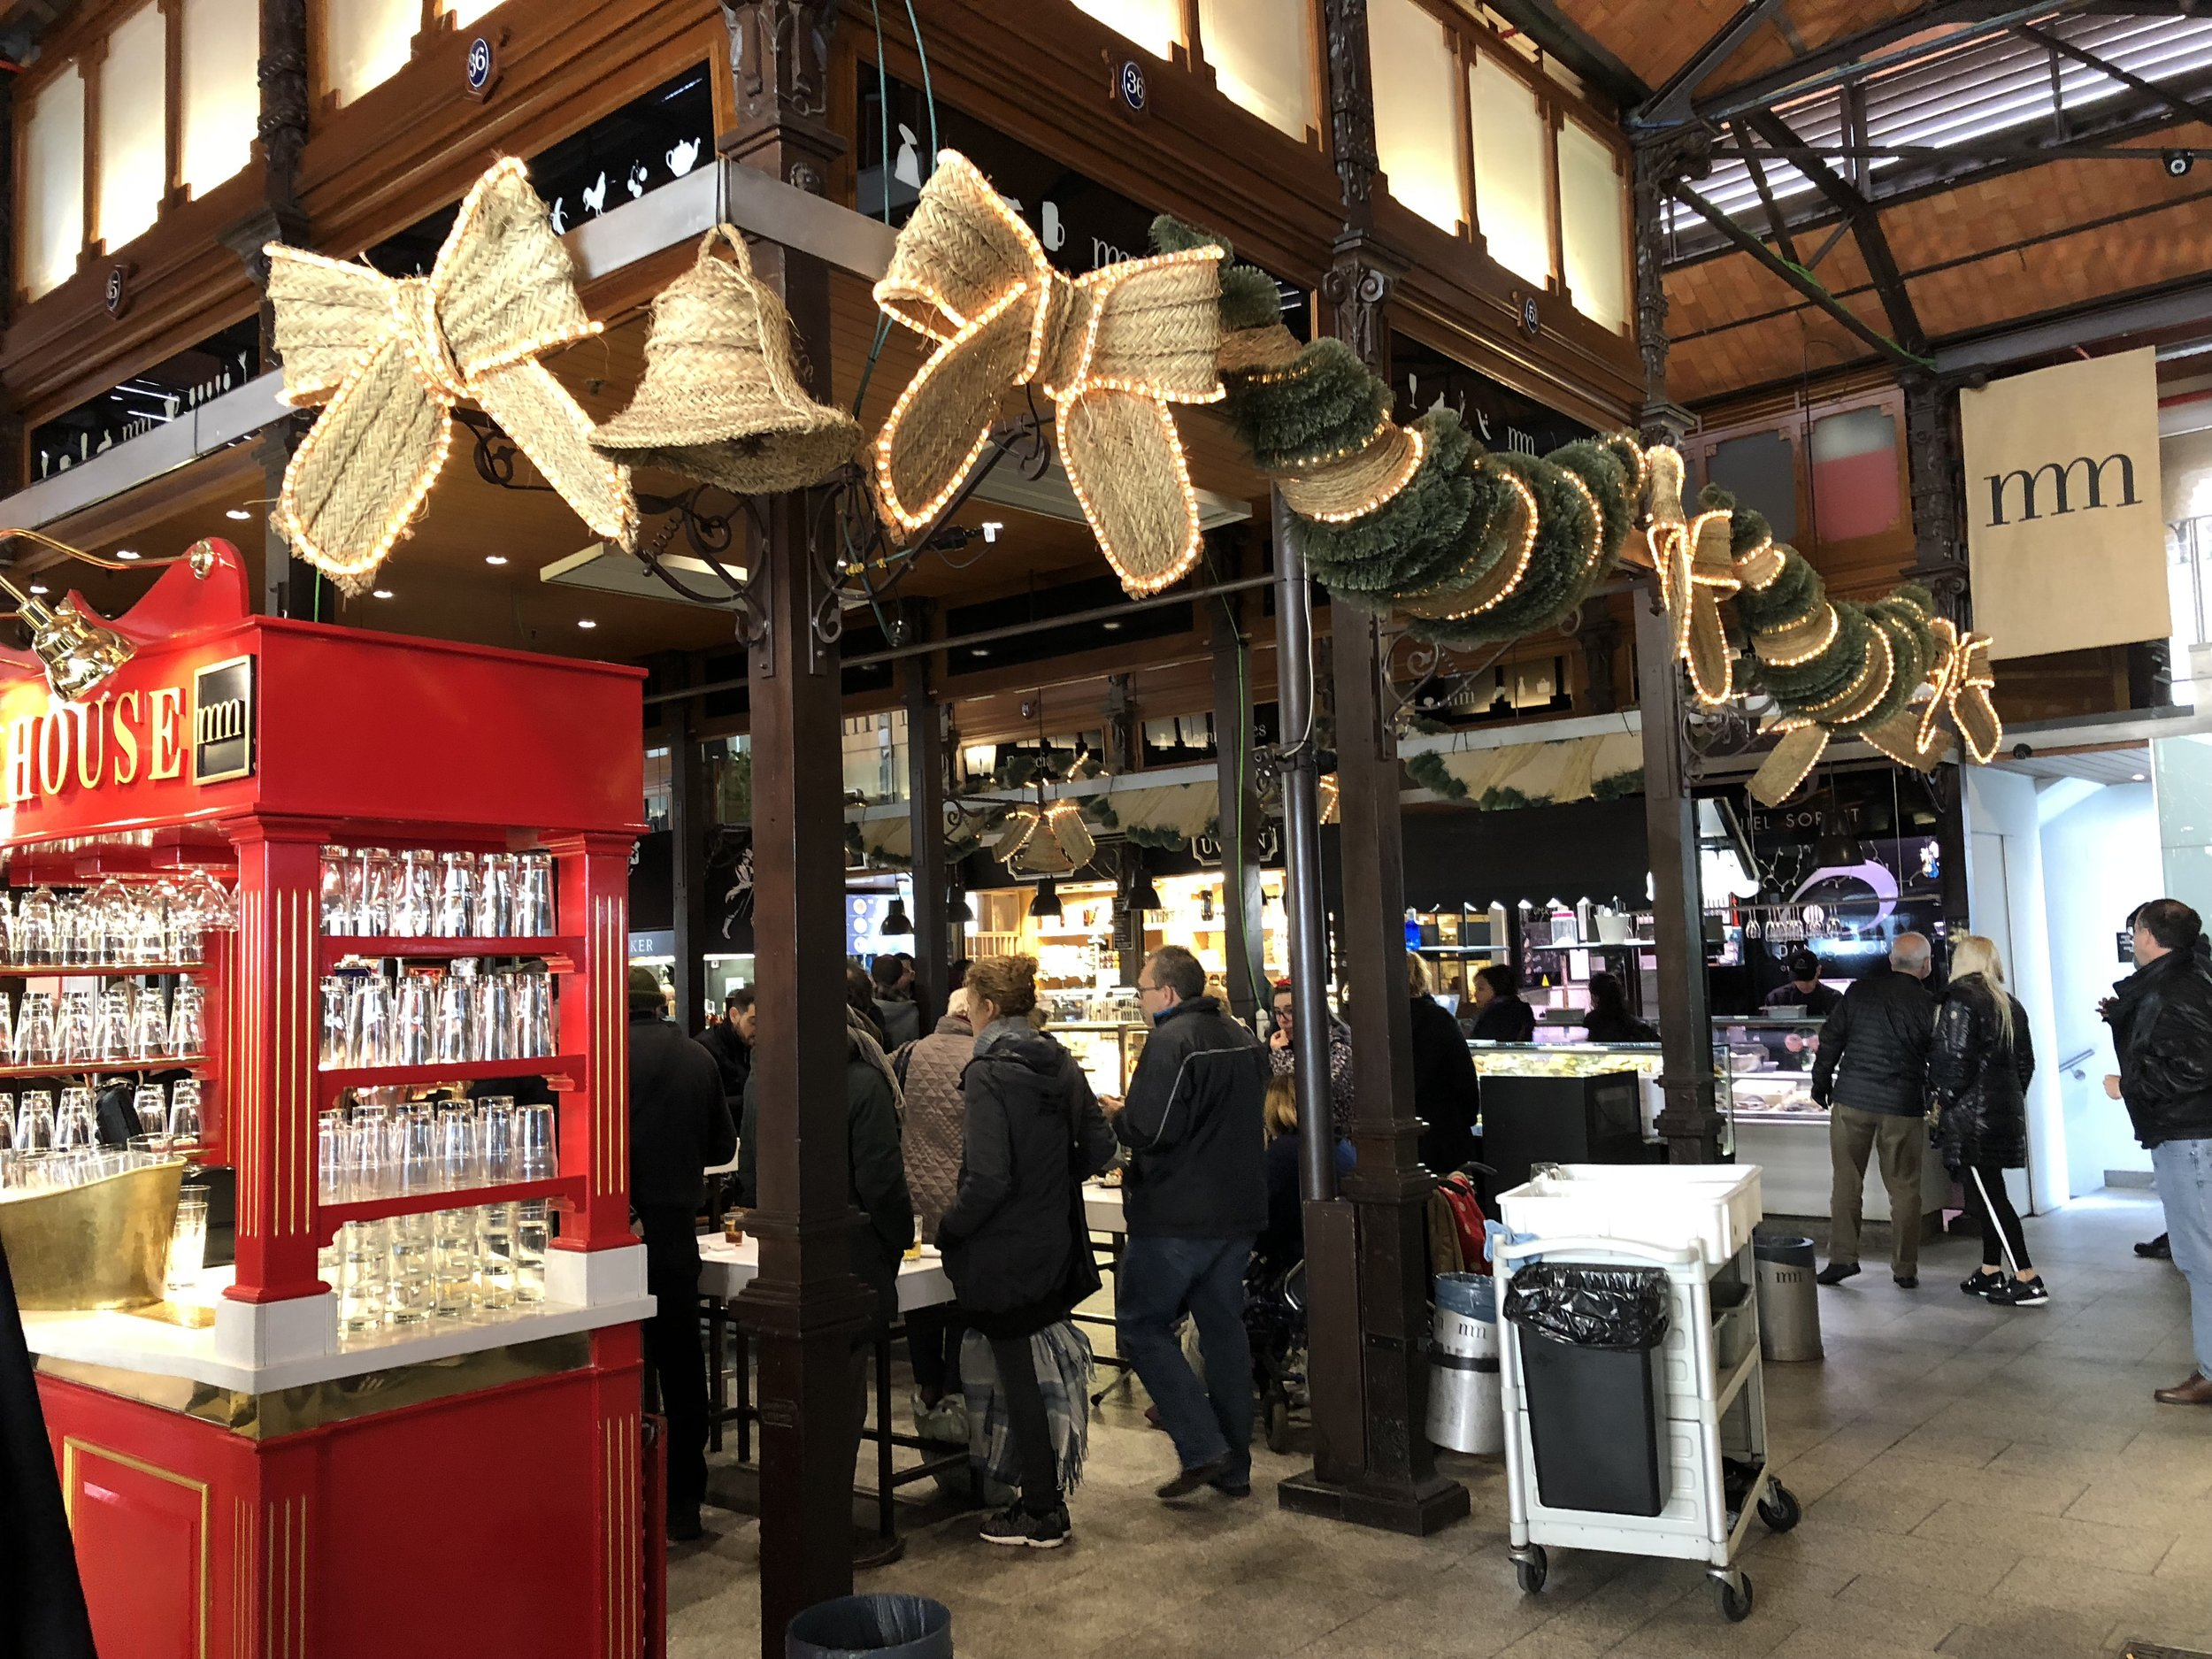 San Miguel Market in Madrid, decorated for the holidays!